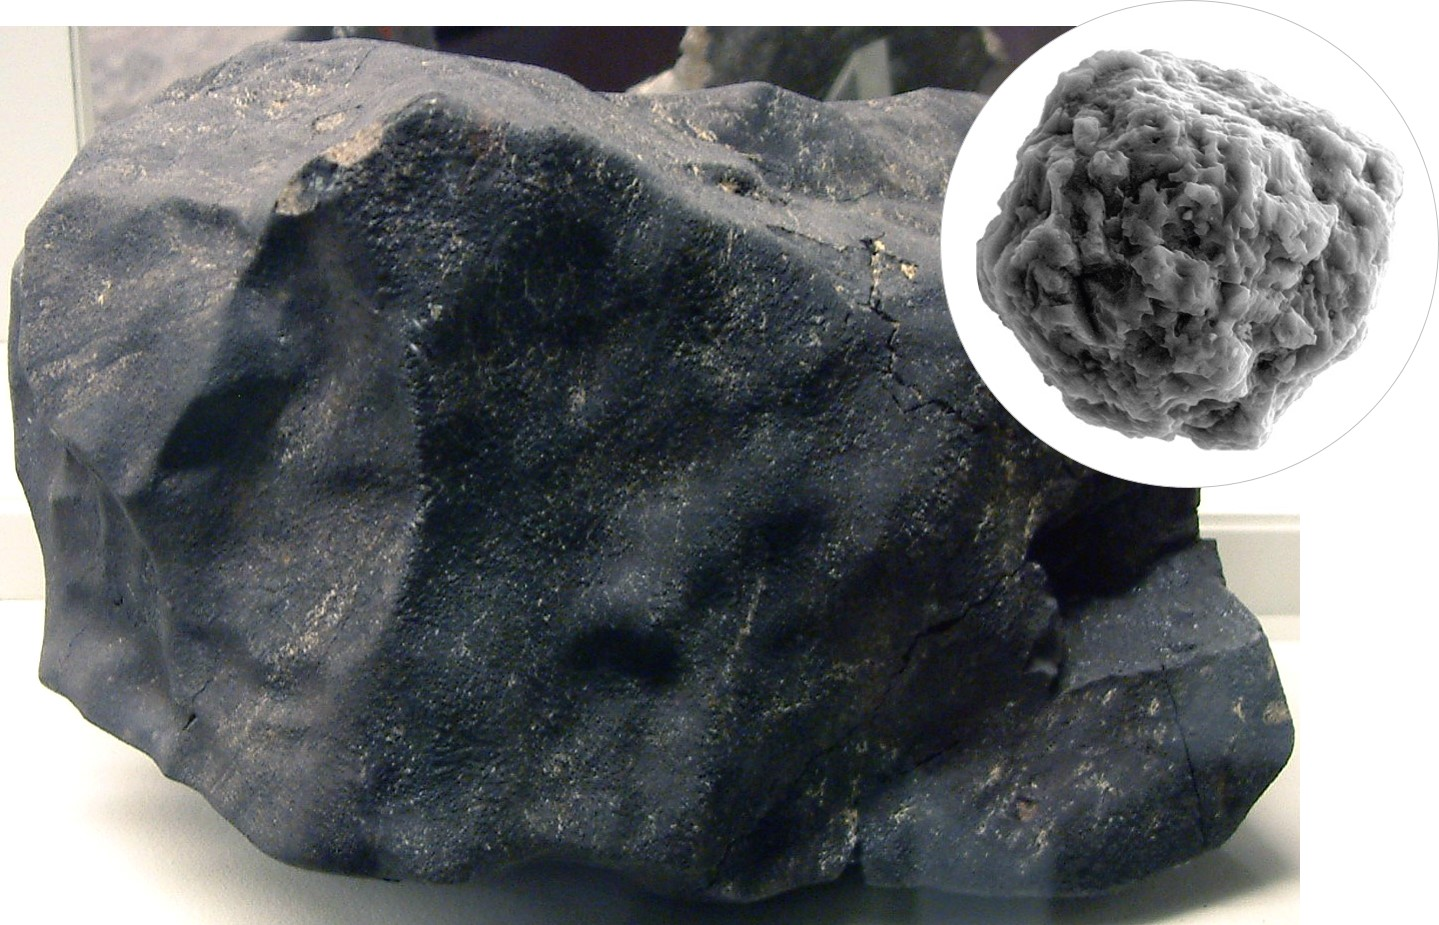 Murchison meteorite and silicon carbide grain of stardust. In blog post Scent from Heaven - an essay on the smell of space, fragrance of meteorites, scent of meteors, and aroma of comets.